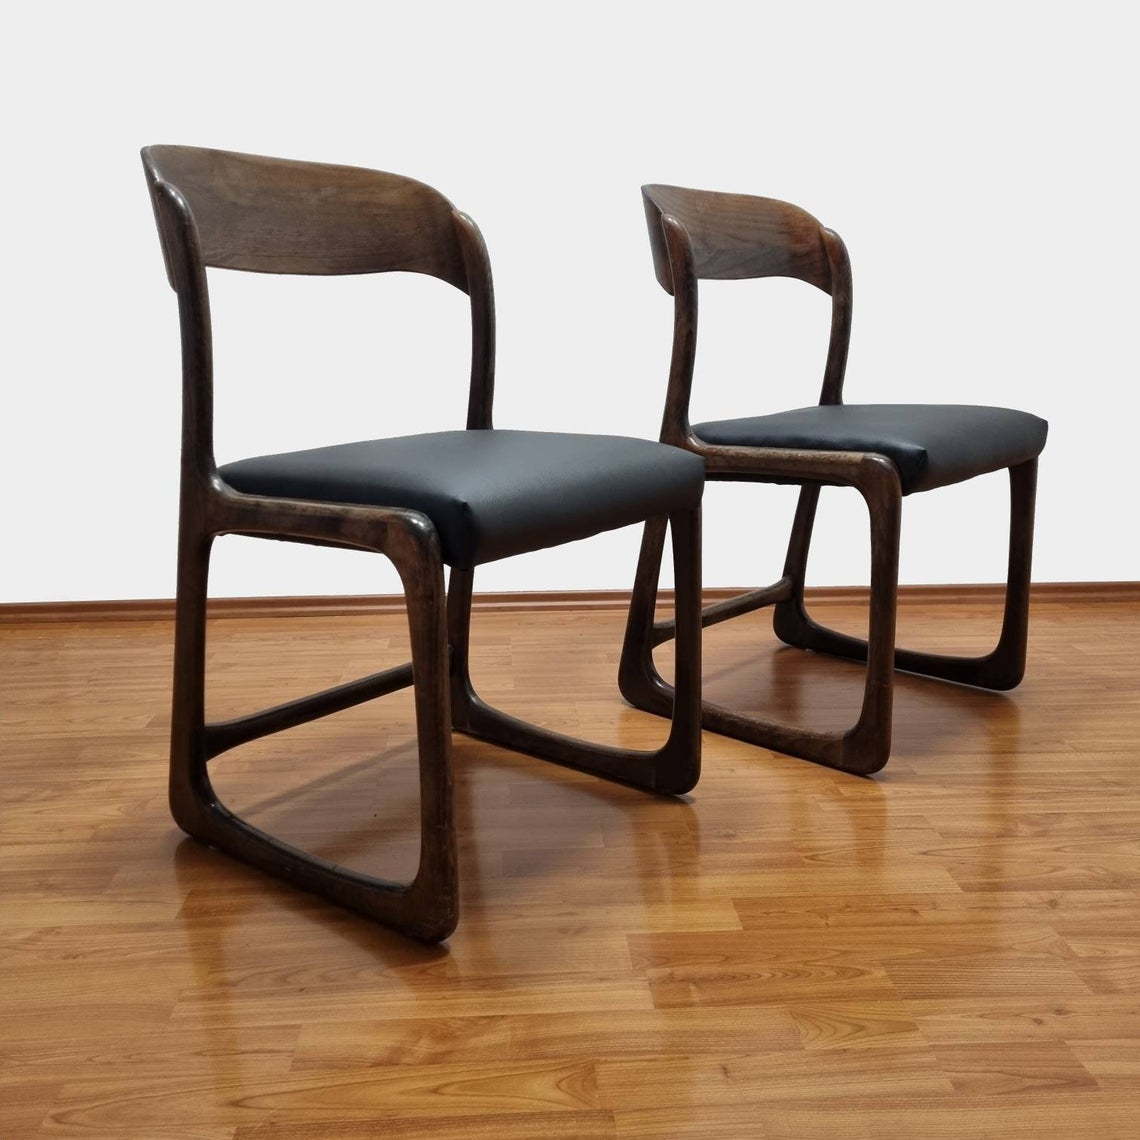 Pair Of Trineau Dinning Chairs, Black Eco Leather Baumann Chairs, France 60s